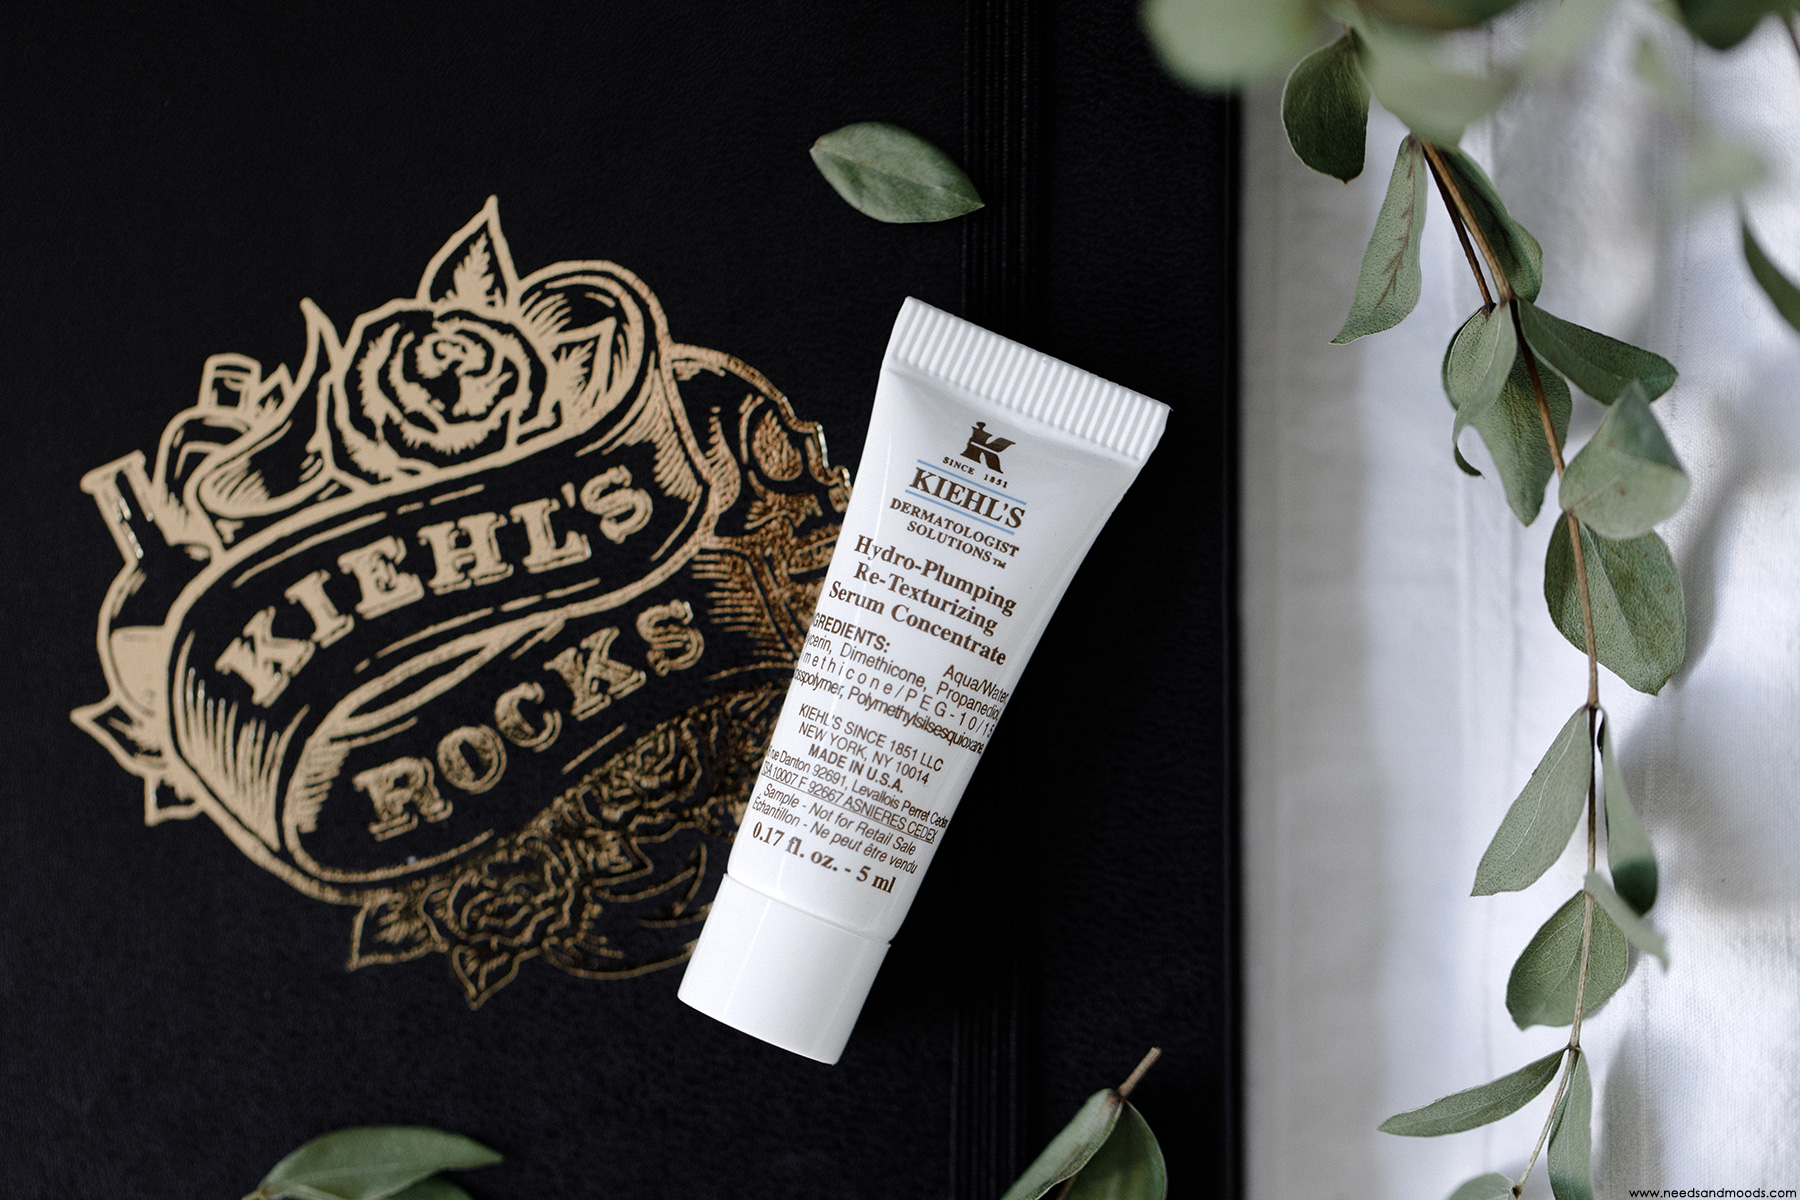 calendrier avent kiehls 2018 hydro plumping re texturizing serum concentrate